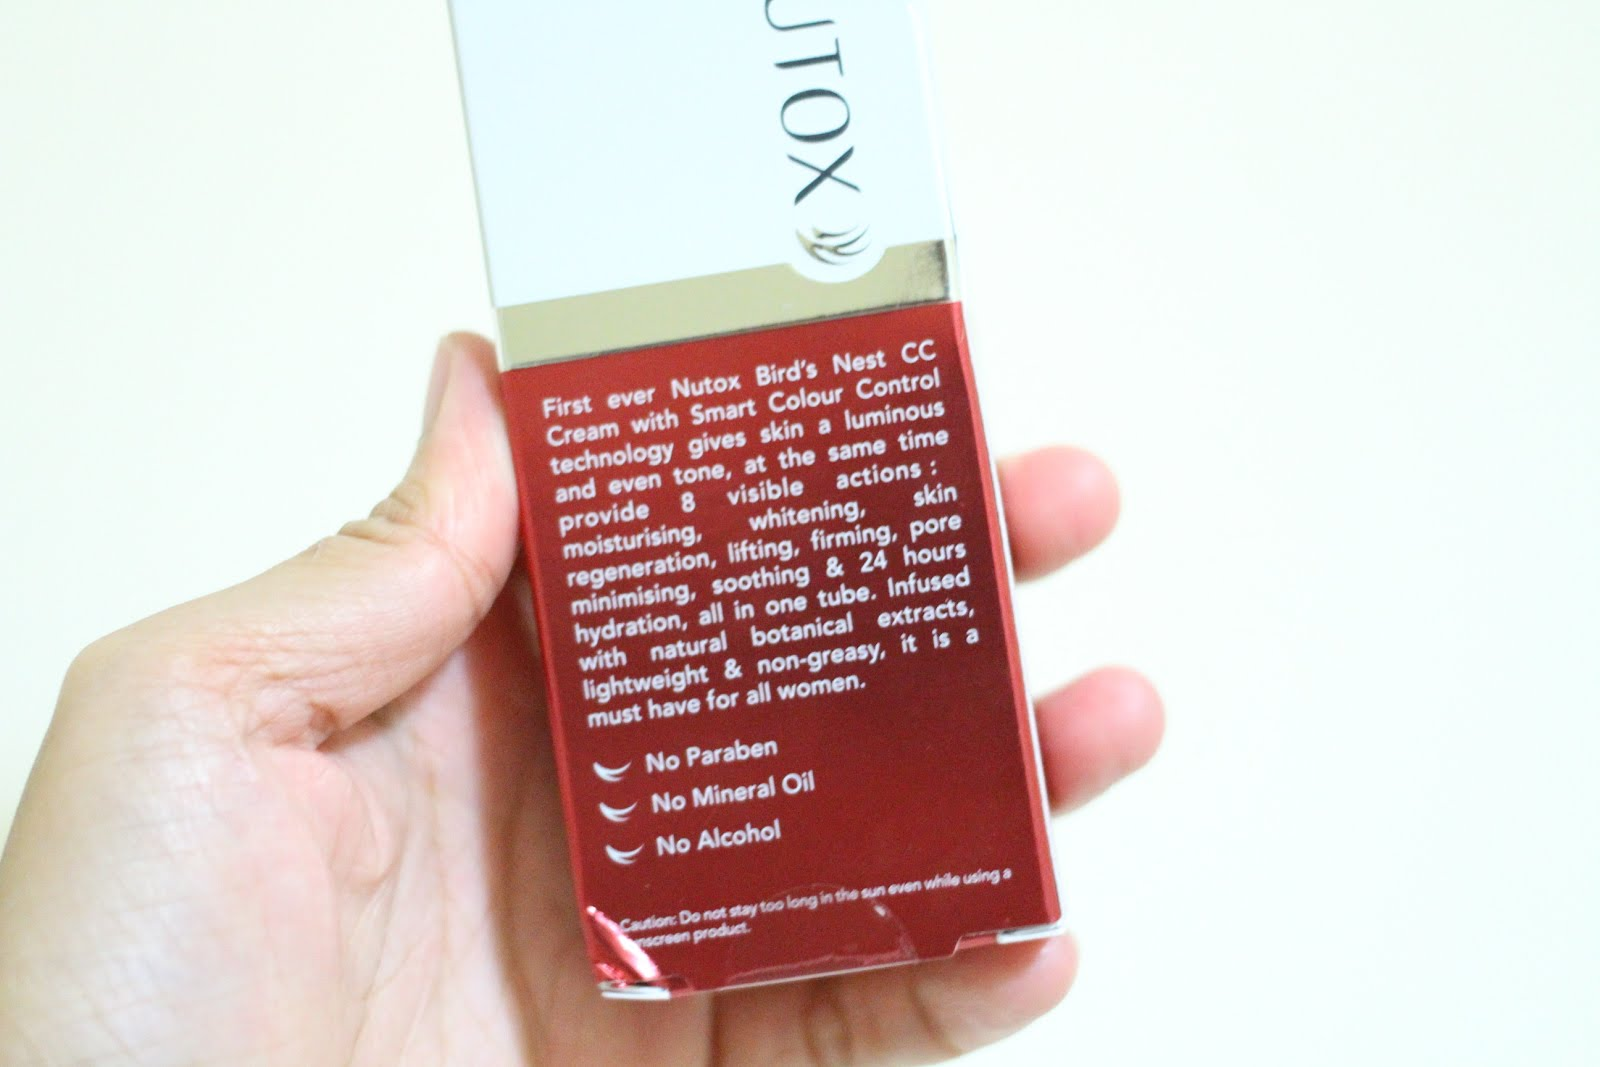 ... nutox products before this would be my first time using nutox and my